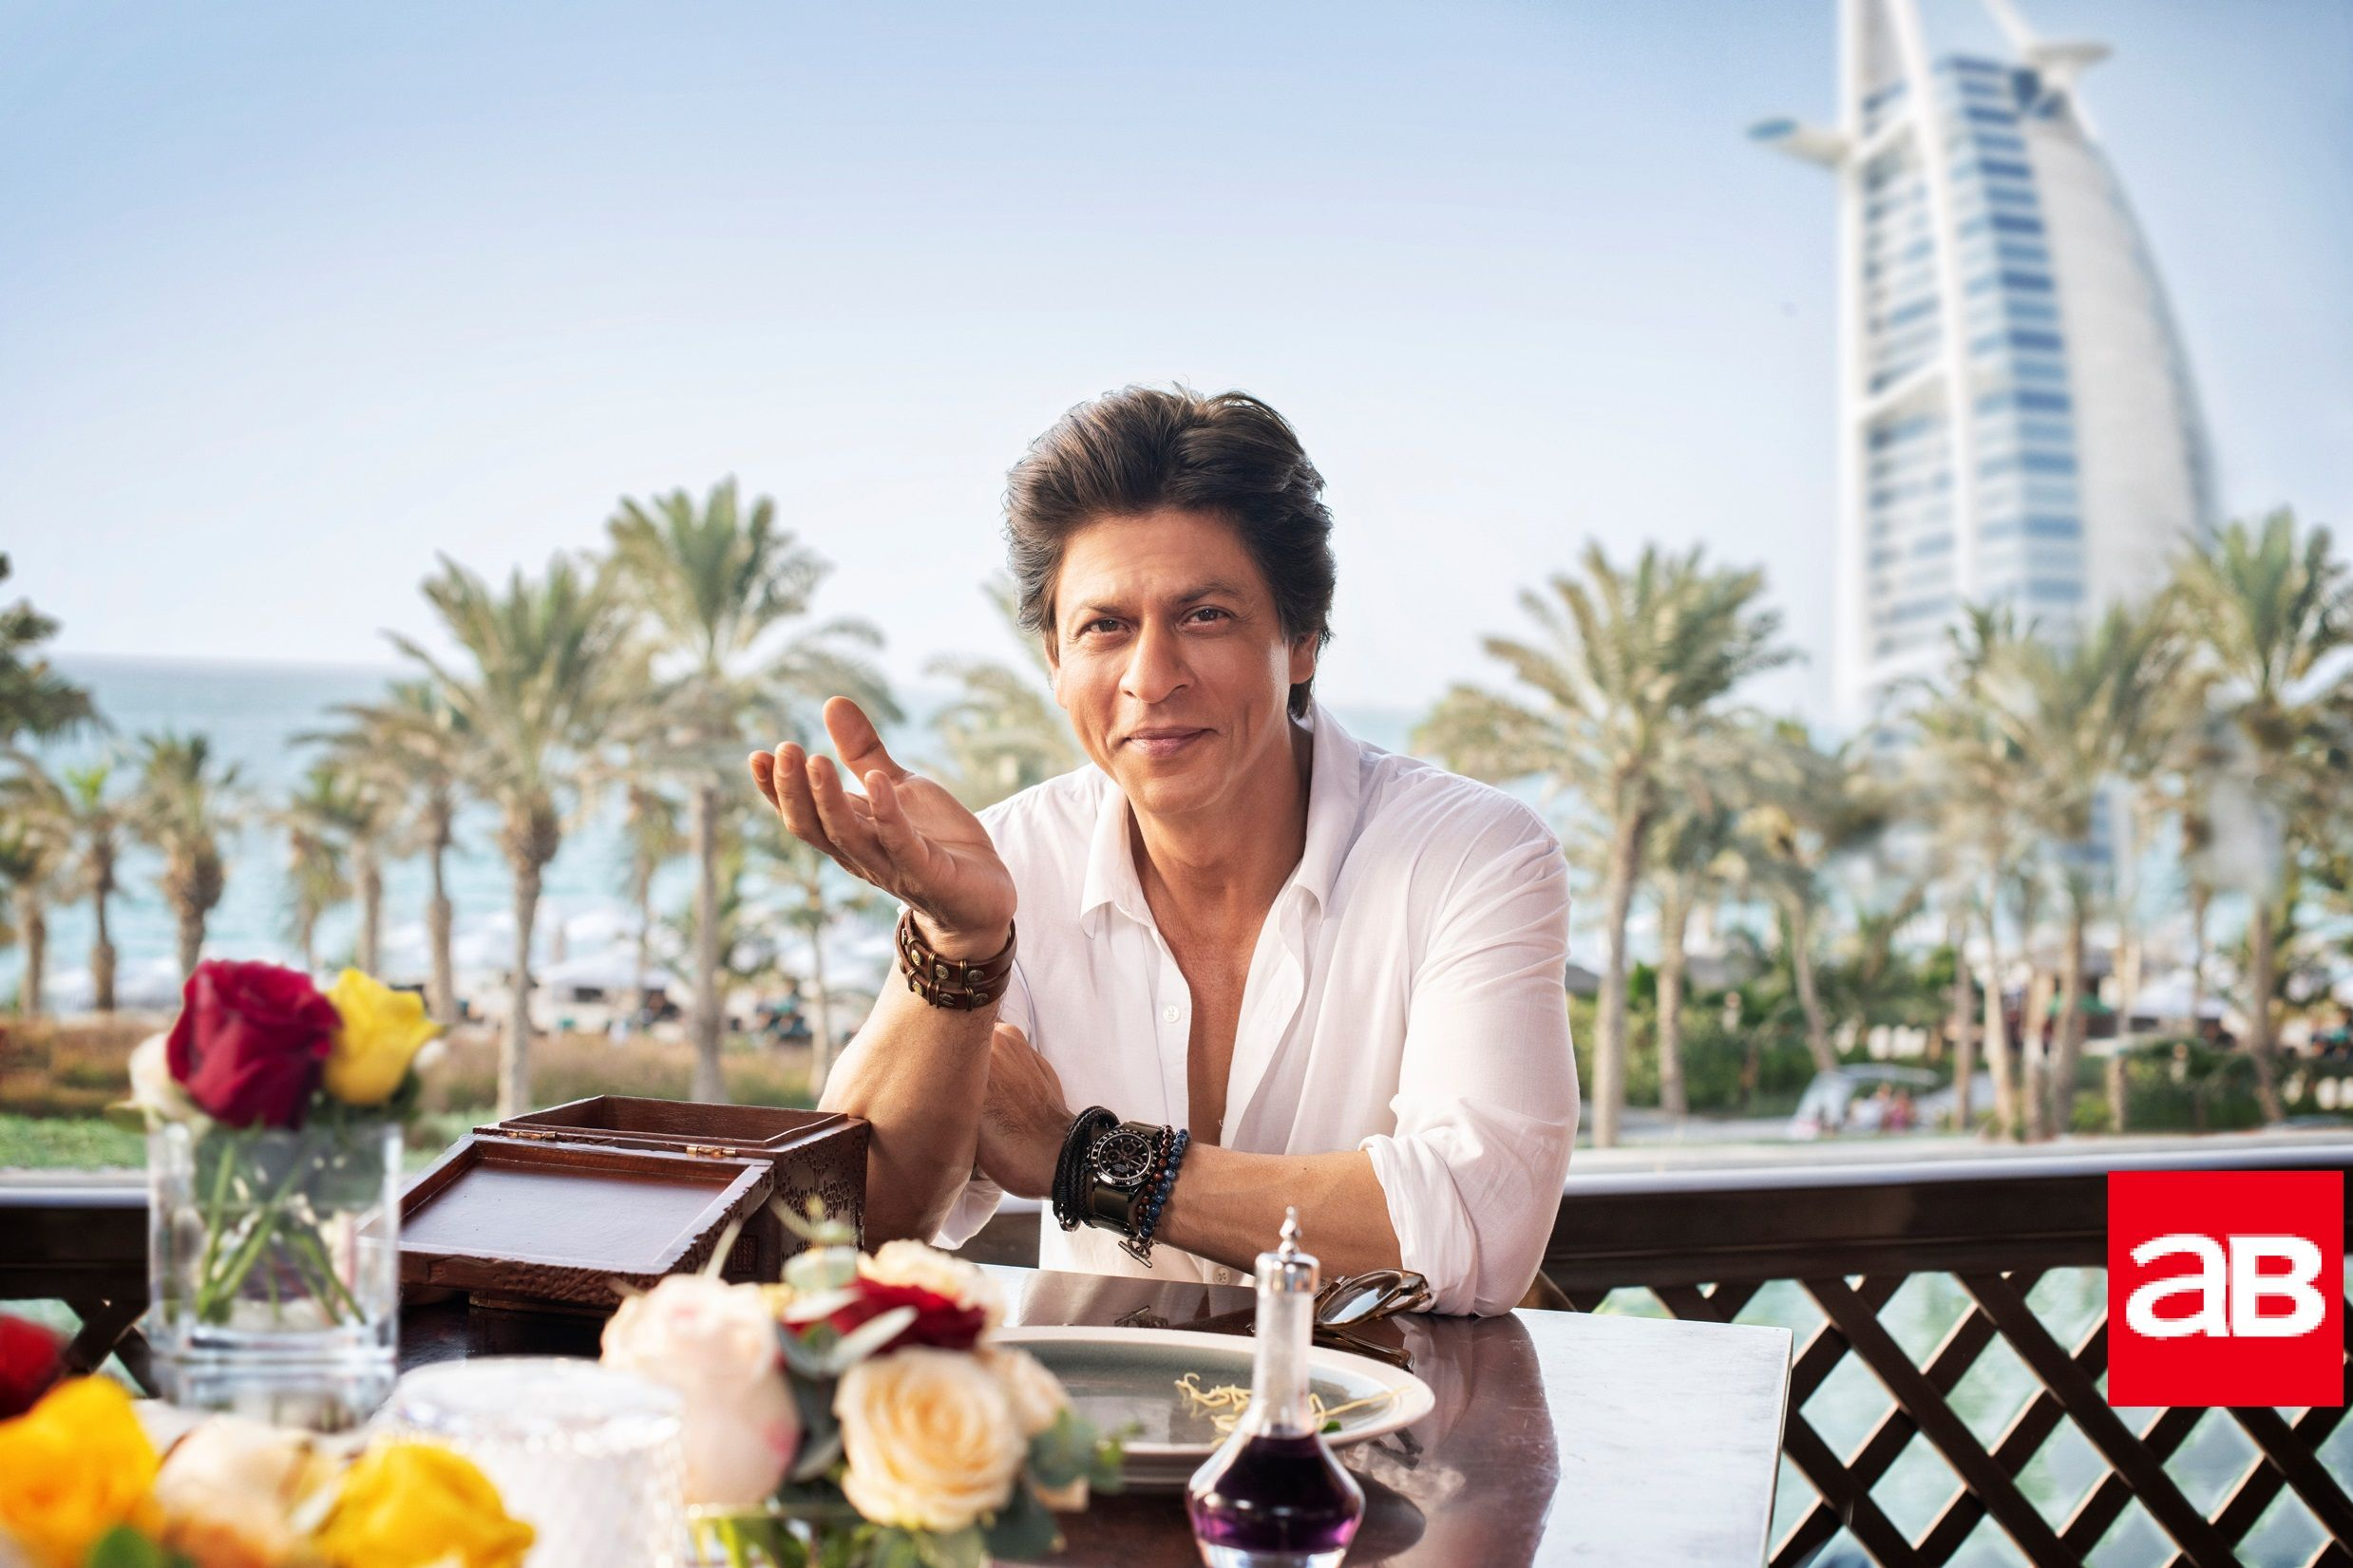 Shah Rukh Khan to Receive a Dubai Star on the Dubai Walk of Fame Project